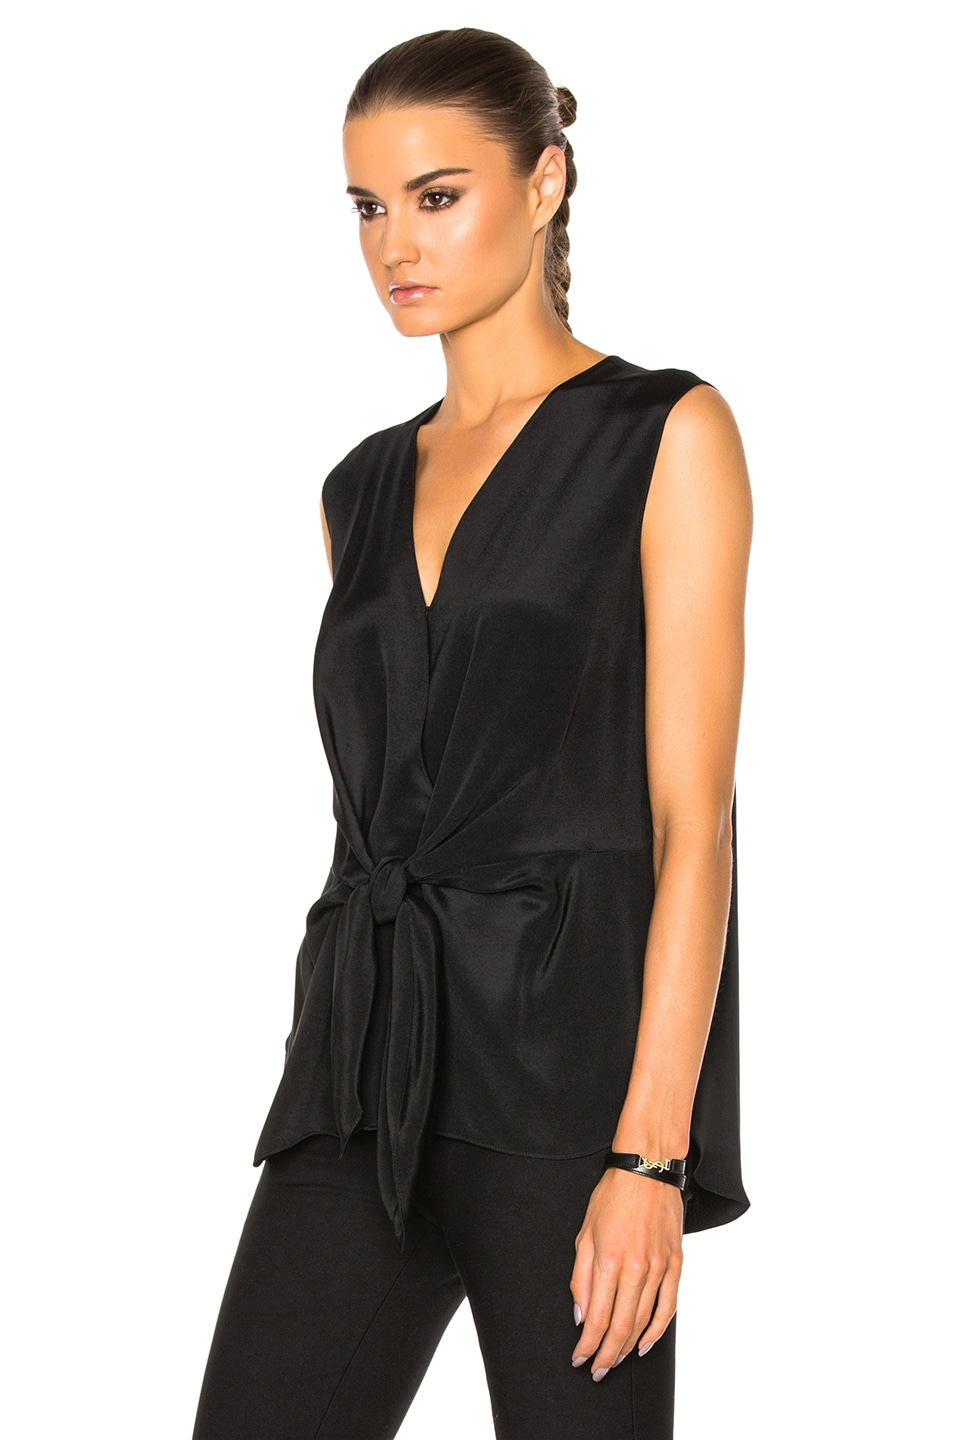 Image 2 of 3.1 phillip lim Sleeveless Front Knot Top in Black